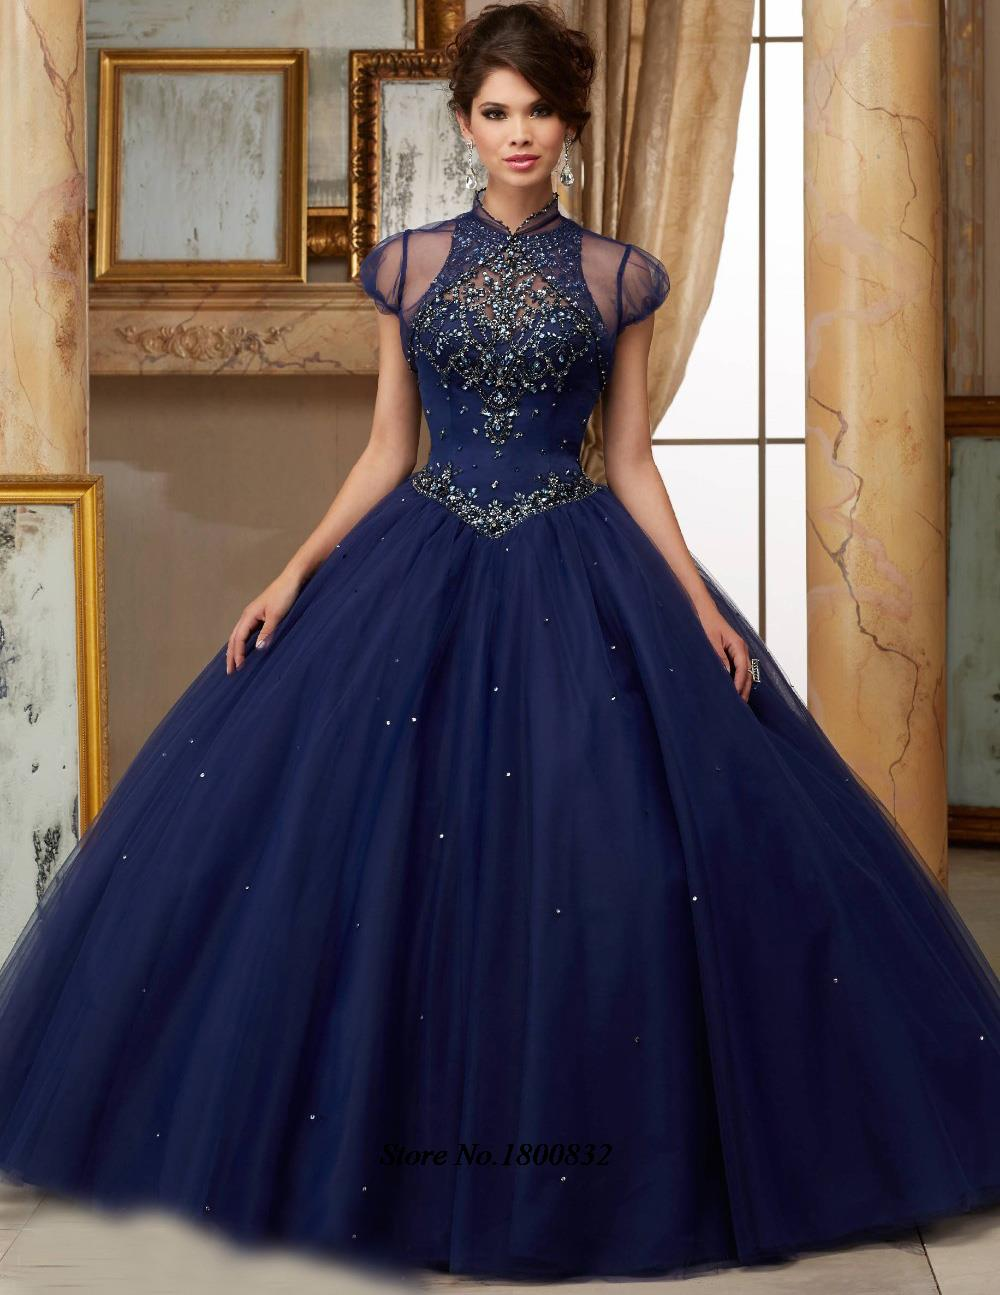 ba0ee3783 Stunning Royal Blue Sweet 16 Dress 2016 Ball Gown Quinceanera Dresses  Beaded Crystal Gorgeous Prom Dress Pageant Gown Q61USD 219.99 piece